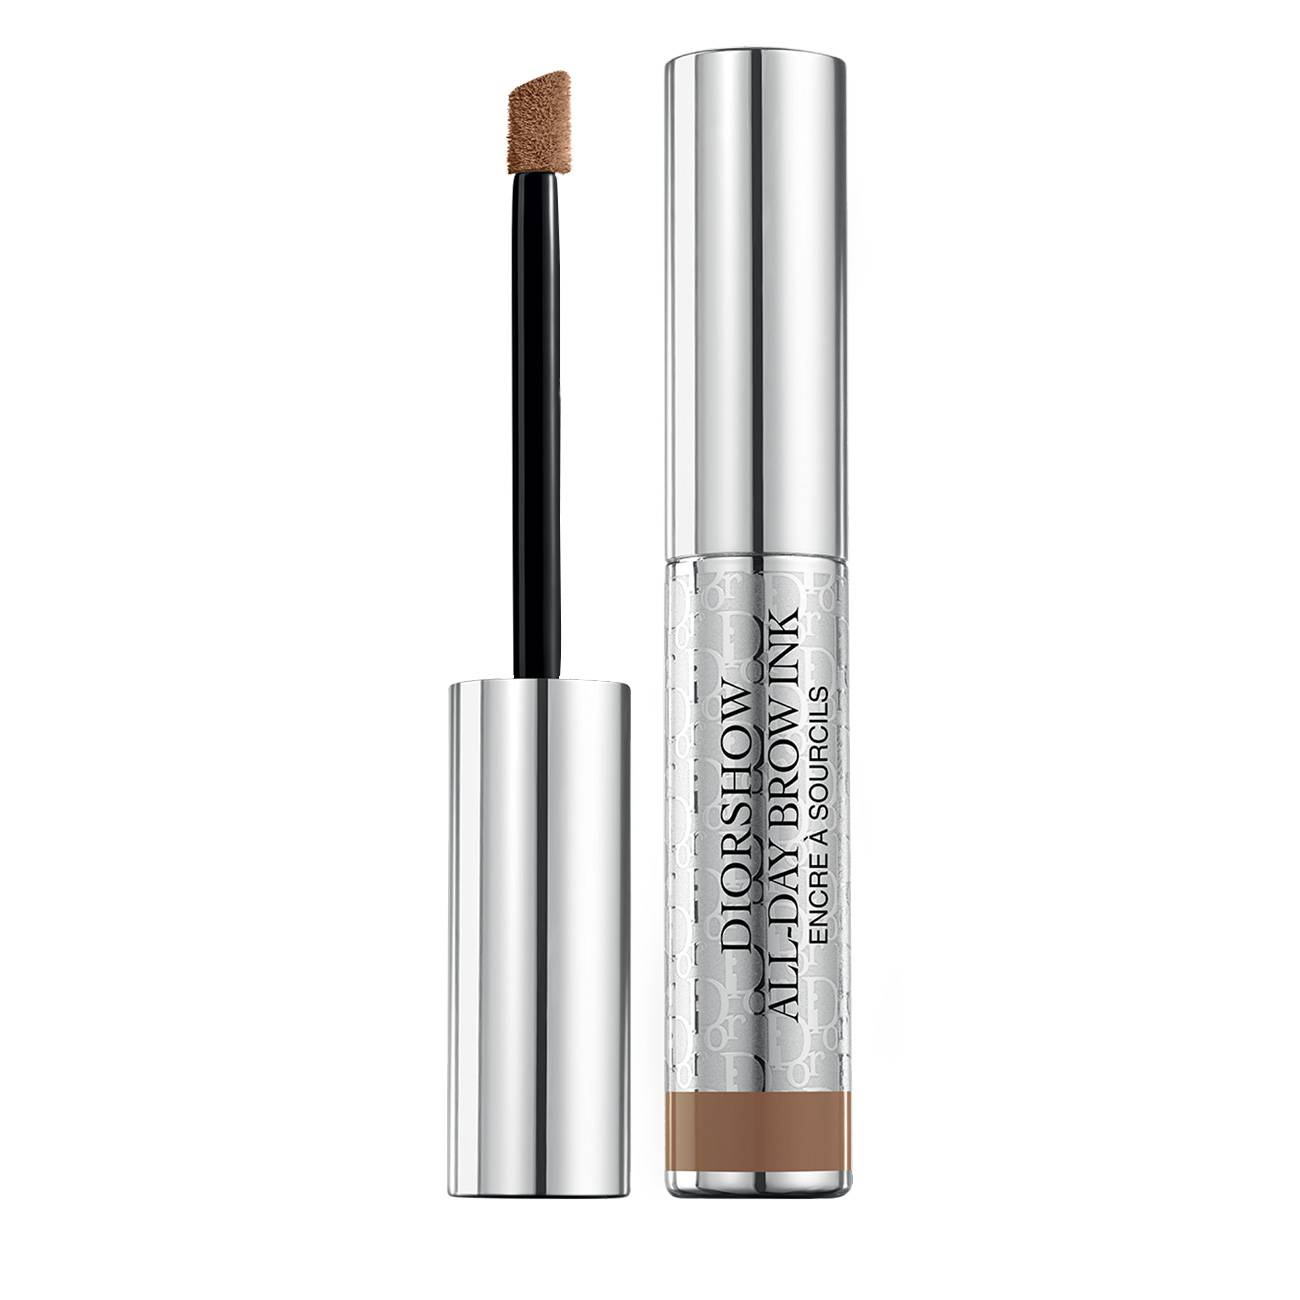 DIORSHOW ALL-DAY BROW INK 021 4ml imagine produs